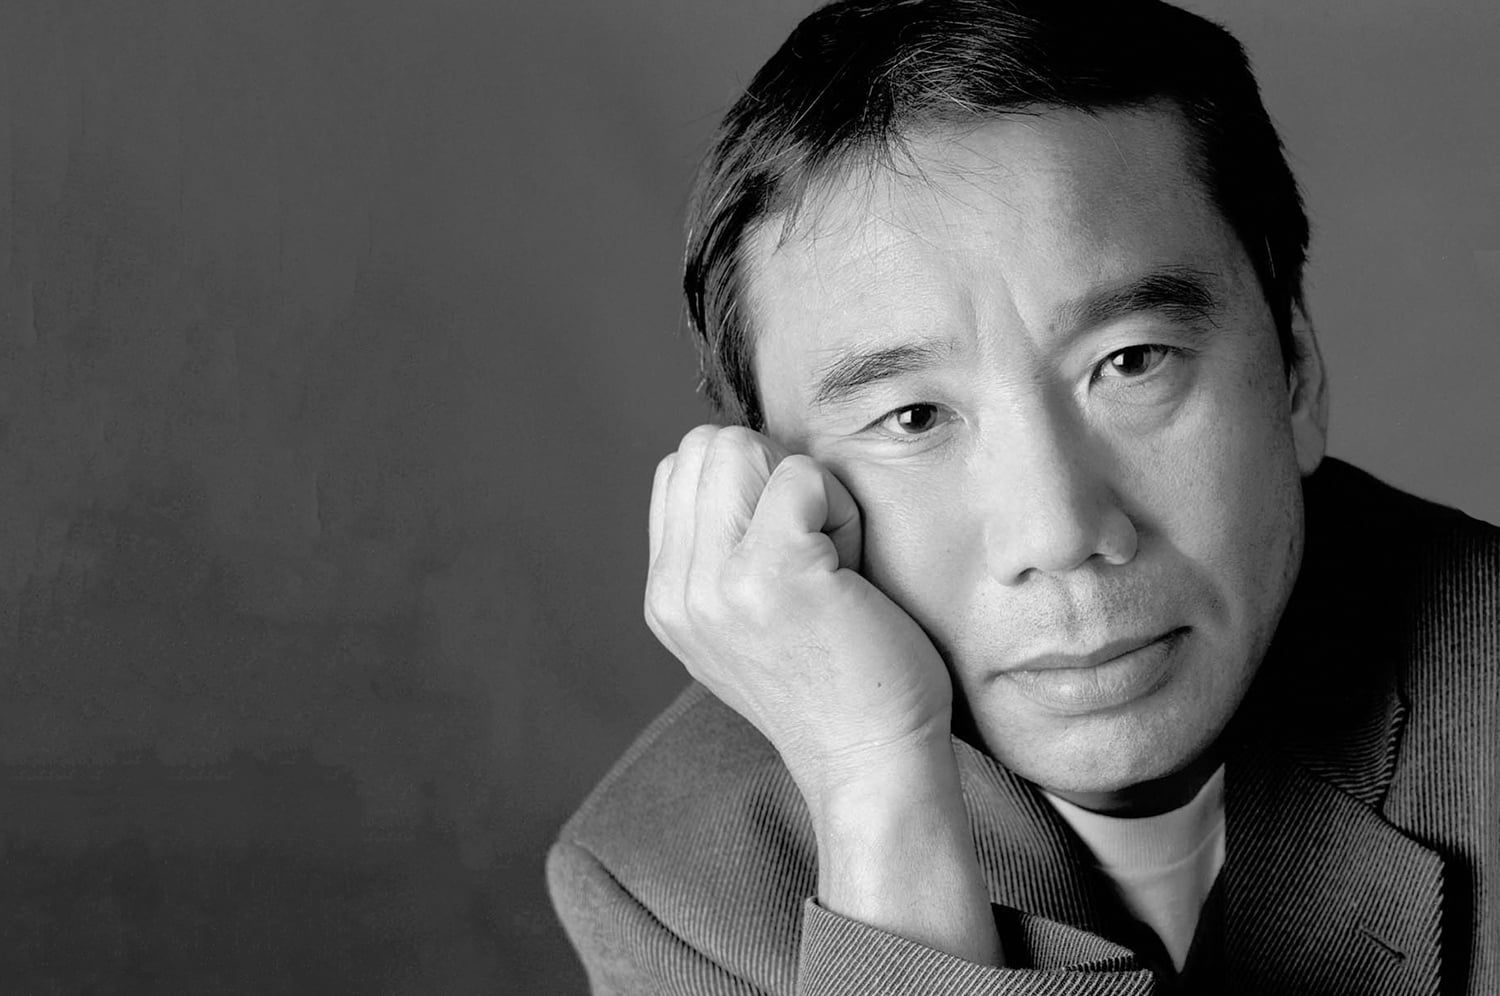 haruki murakami killing commendatore ish mom